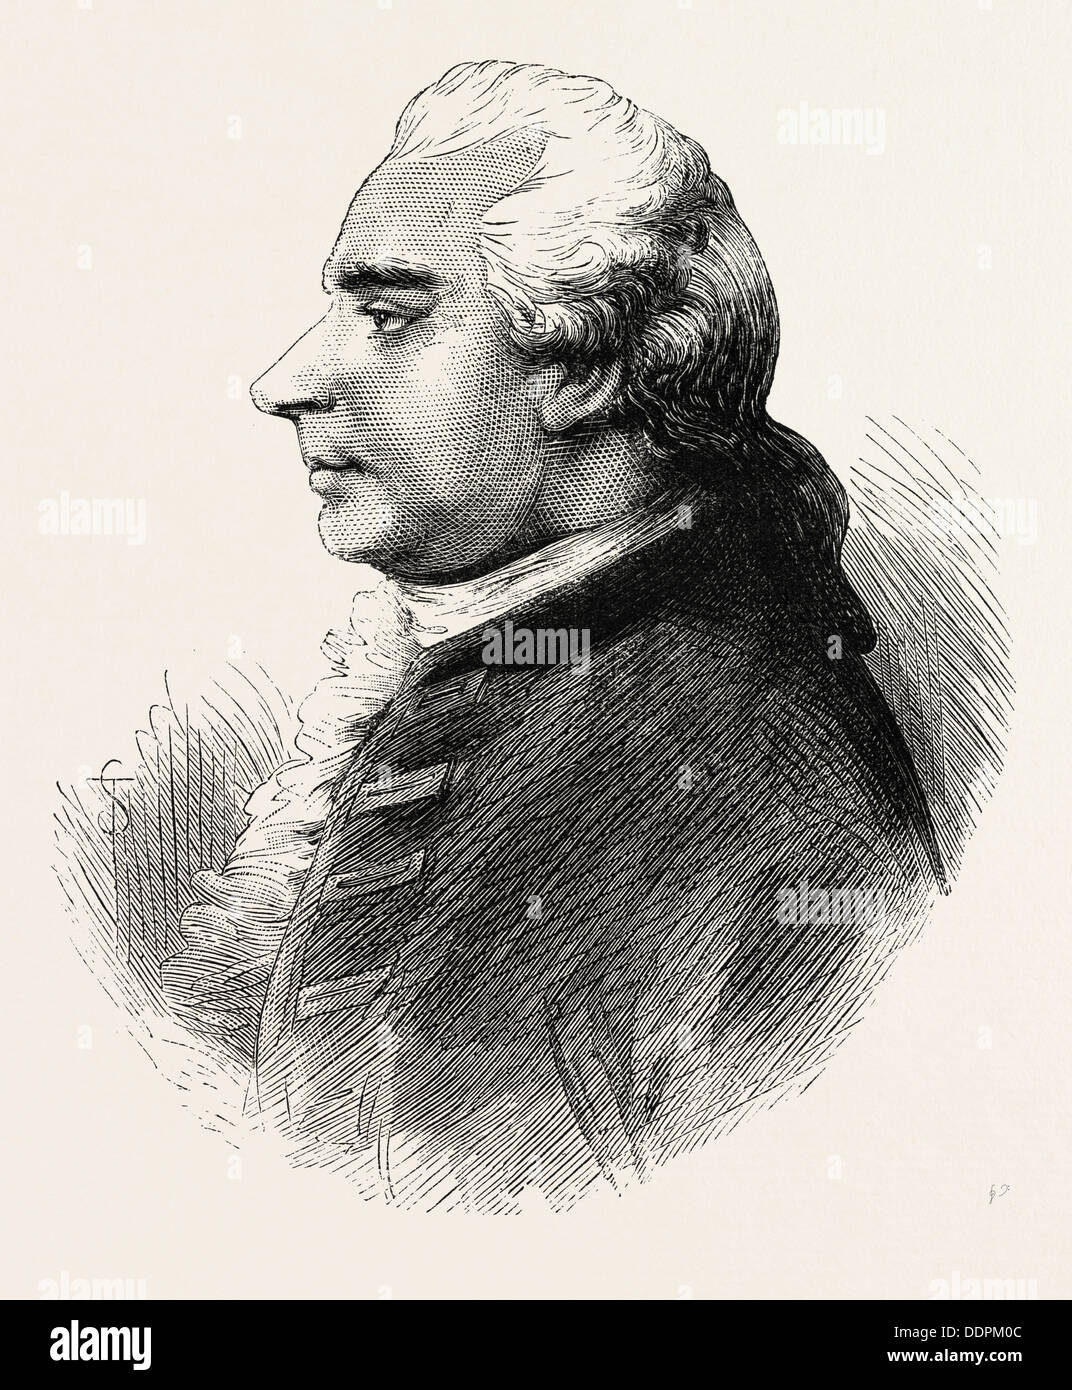 Silas Deane, 1737-1789,  was an American merchant, politician and diplomat, US, USA, 1870s engraving - Stock Image